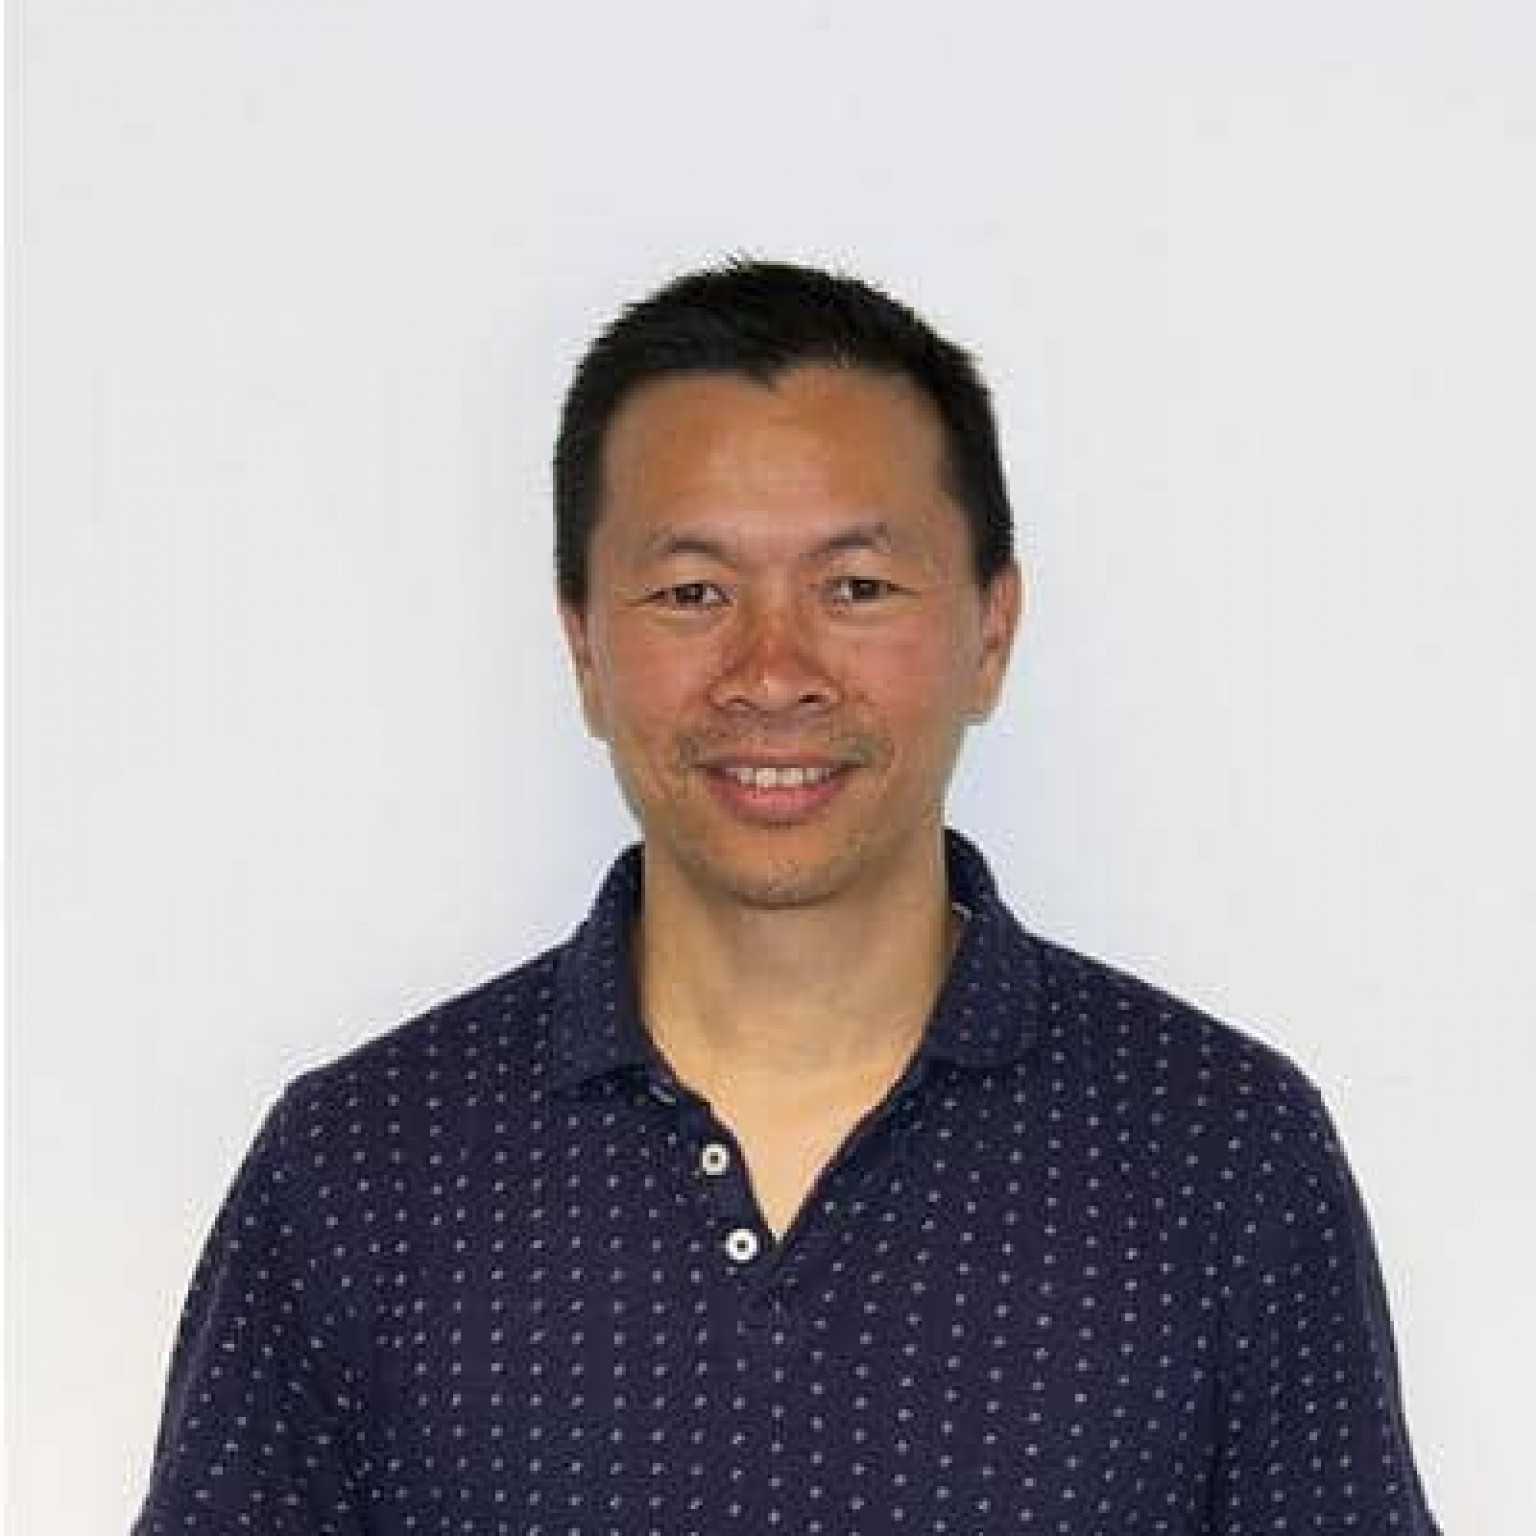 Picture of Koen The, the CEO of Lendahand